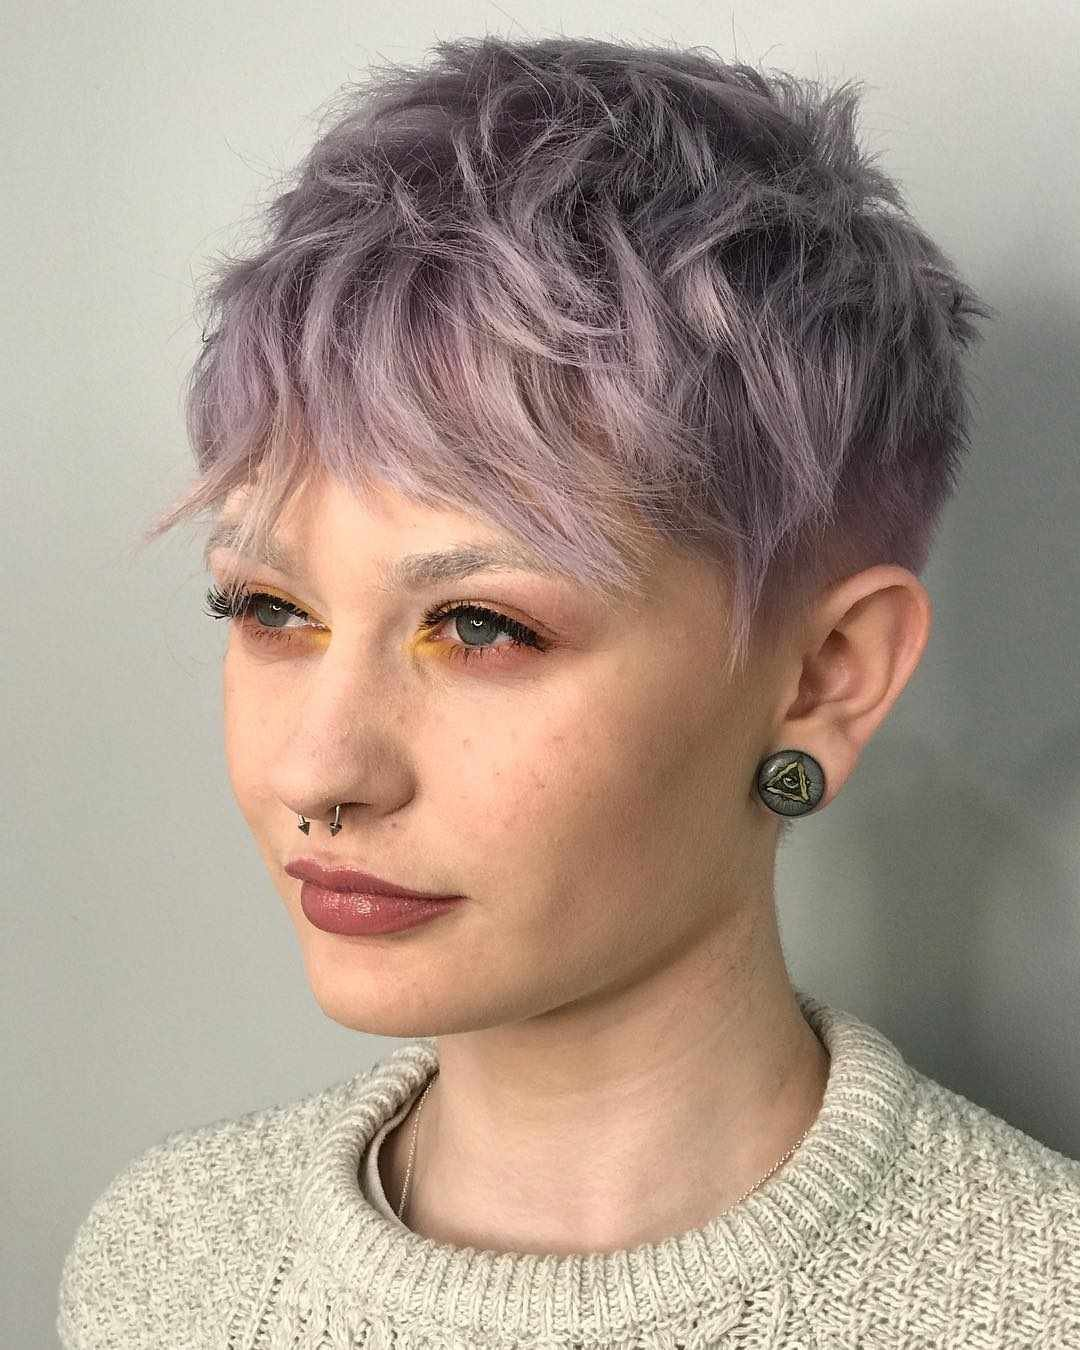 The Best 60 Most Popular Pixie And Bob Short Hairstyles 2019 Pictures